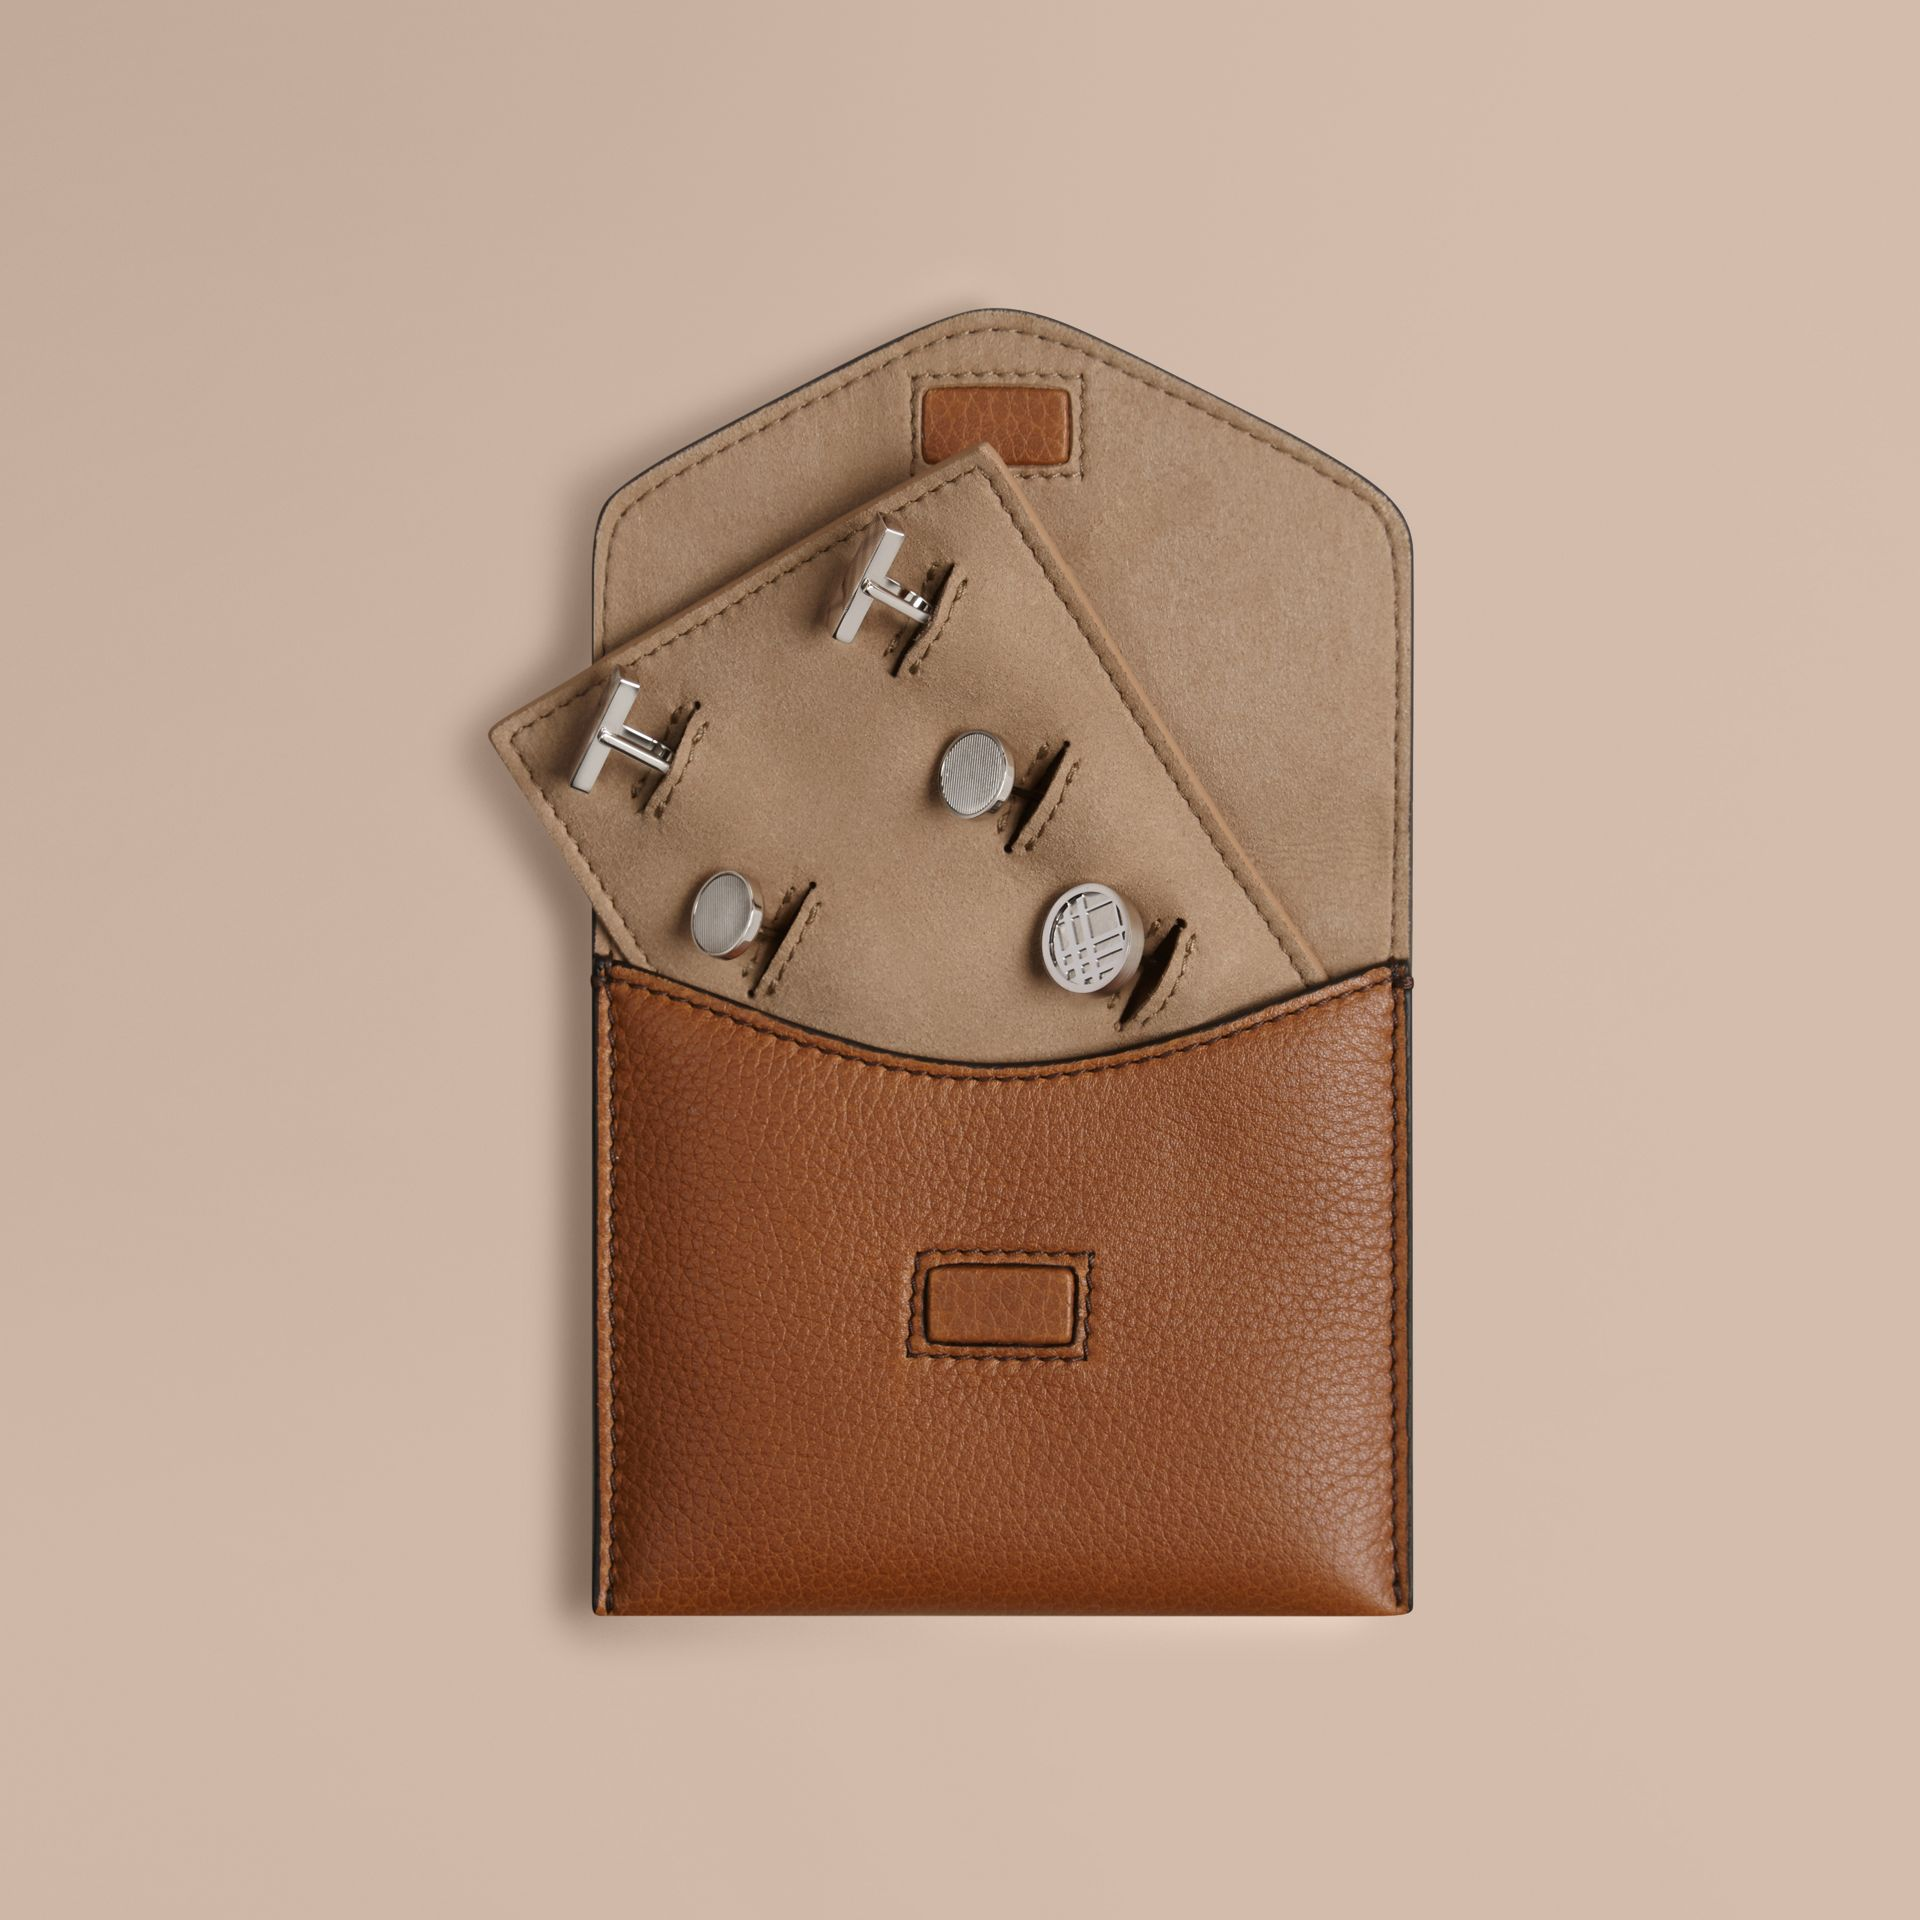 Grainy Leather Cufflink Case in Tan - Men | Burberry - gallery image 1